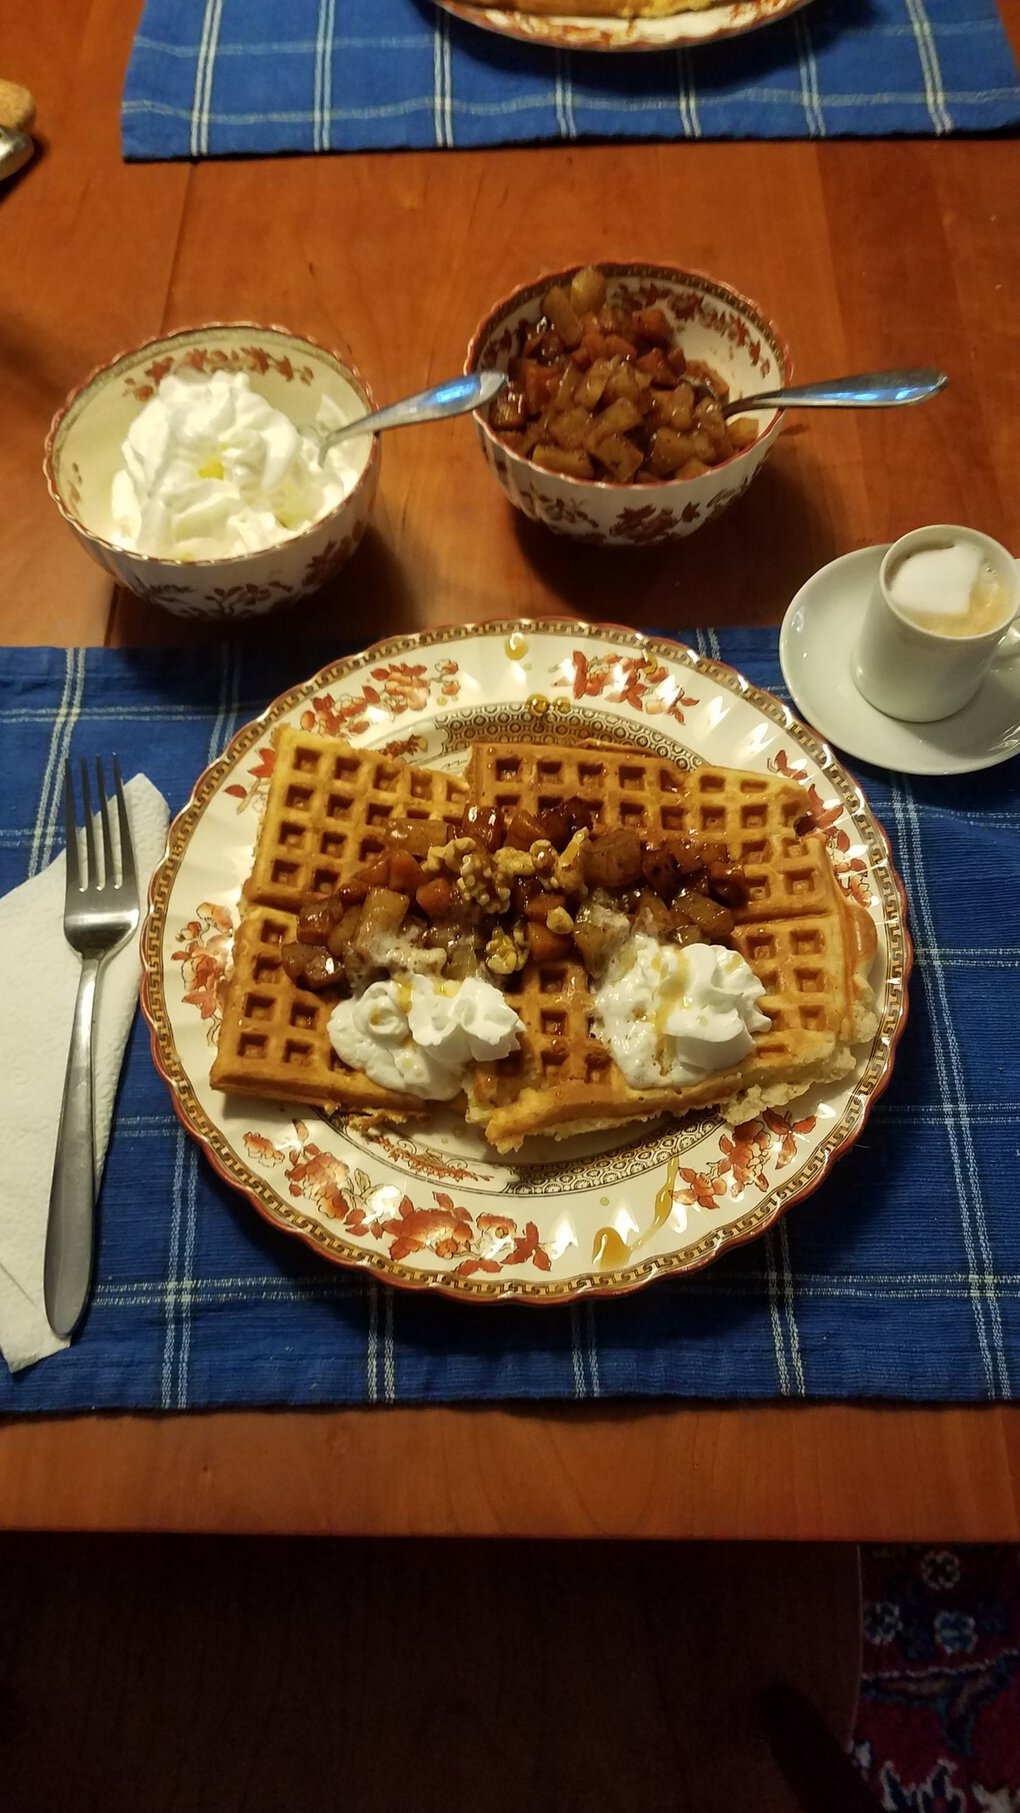 Breakfast for dinner is sometimes the best kind of dinner. Especially when you make waffles with a squash apple compote that comes complete with ginger orange glaze. (Courtesy of Kevin Rochlin)